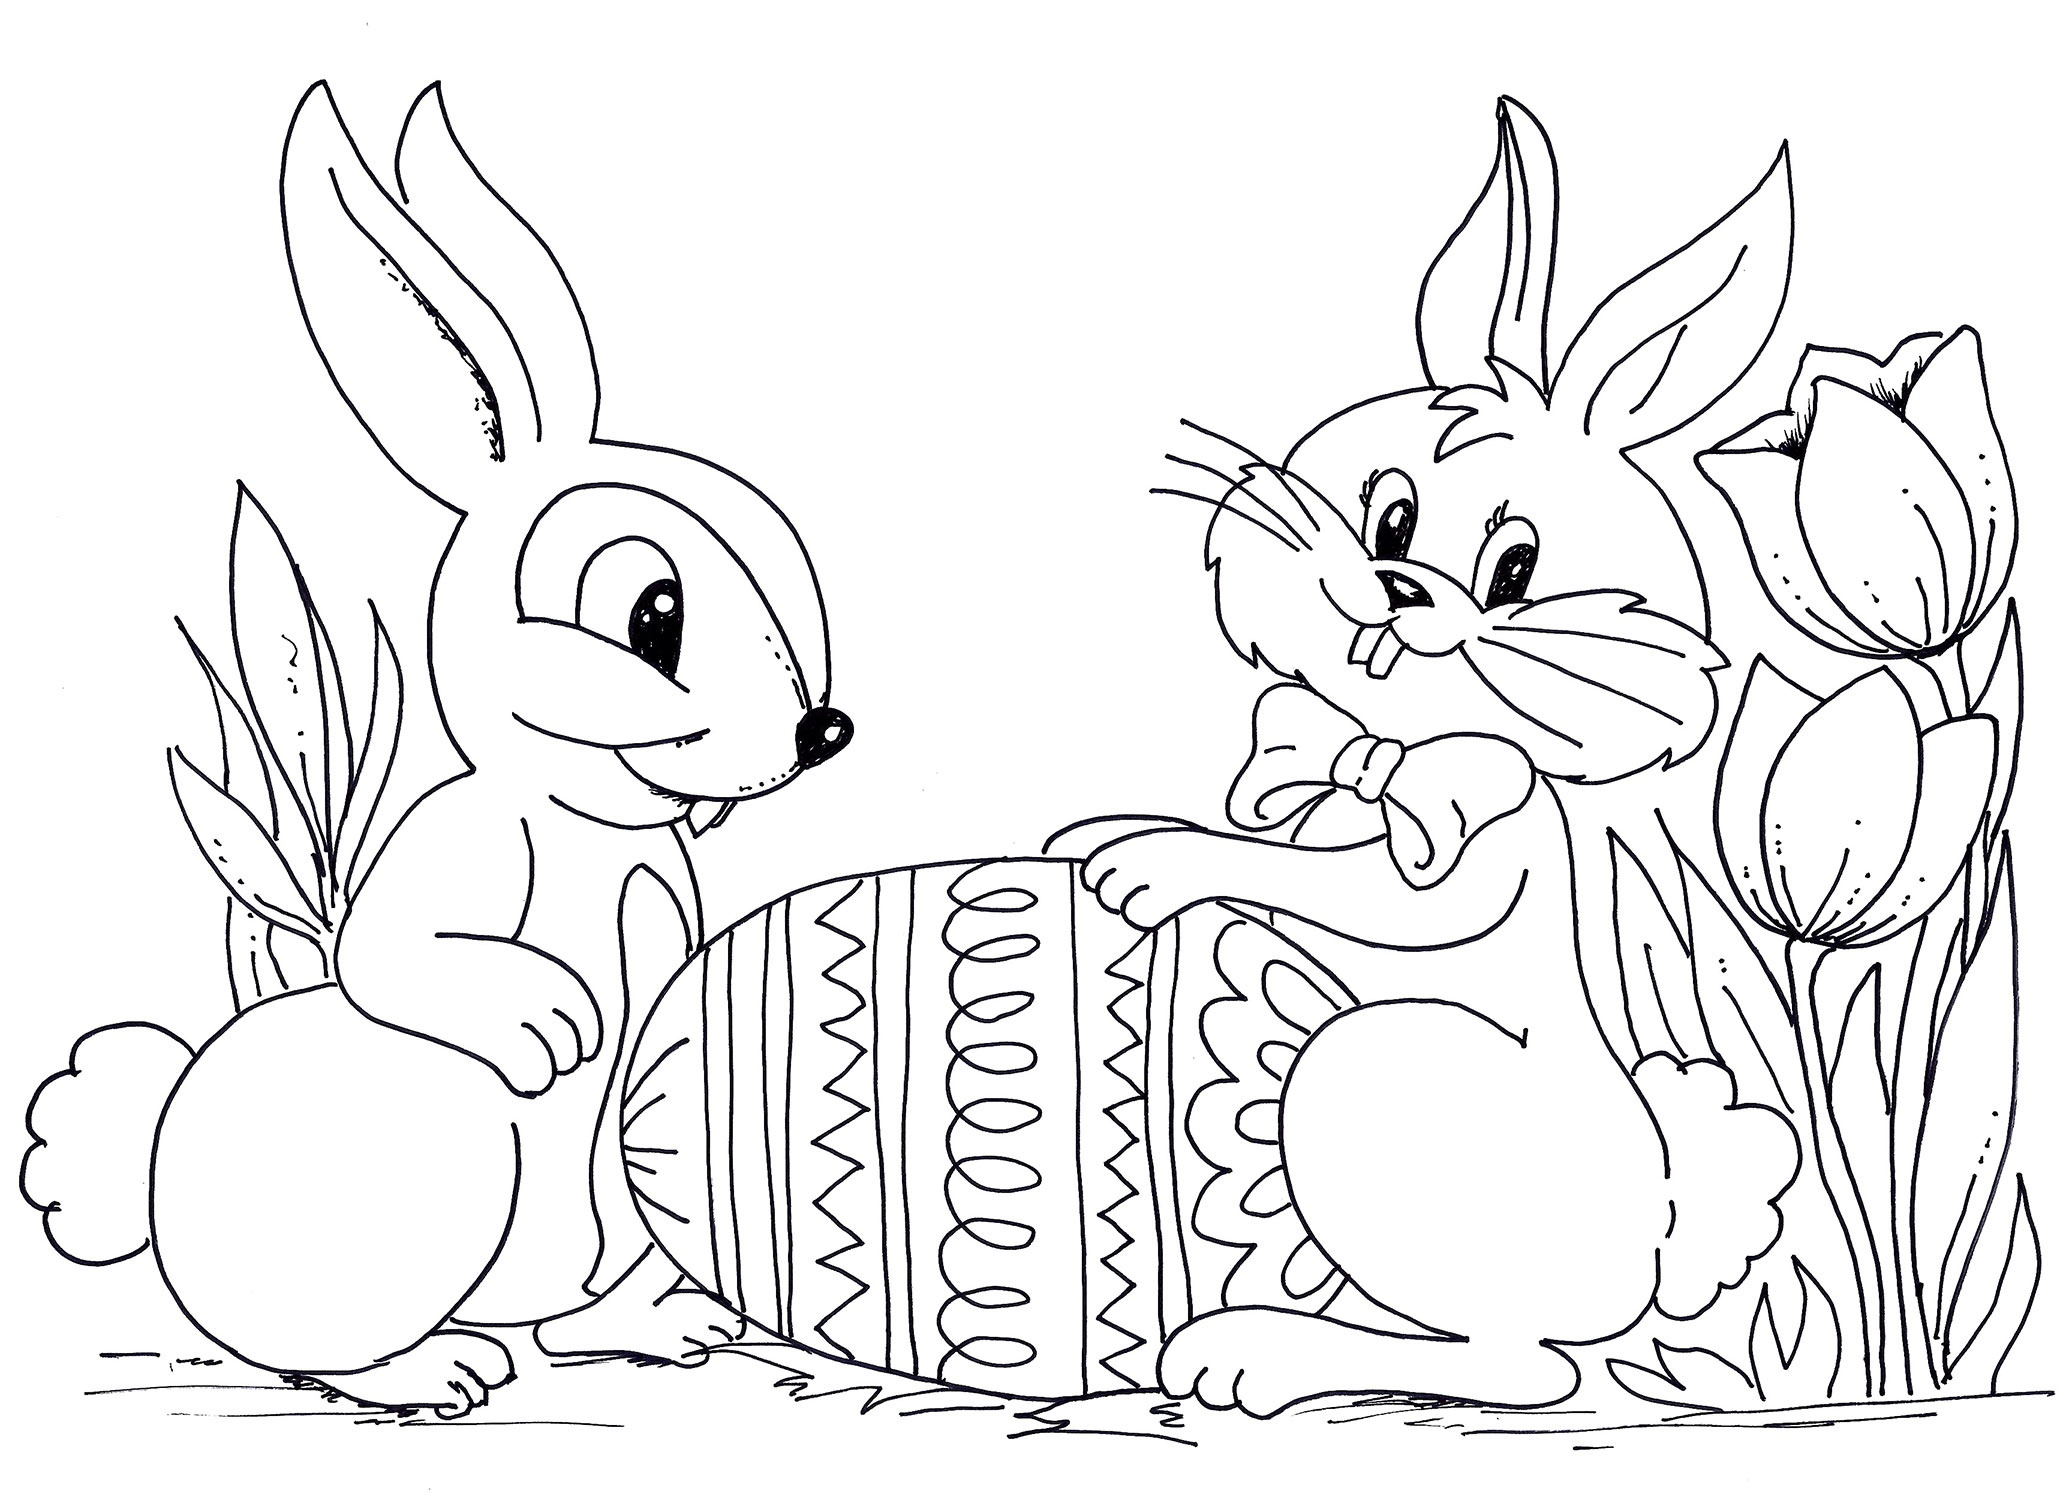 Awesome Rabbit Zentangle Coloring Page Art Pinterest Collection Of Remarkable Realistic Bunny Coloring Pages Rabb Unknown Download